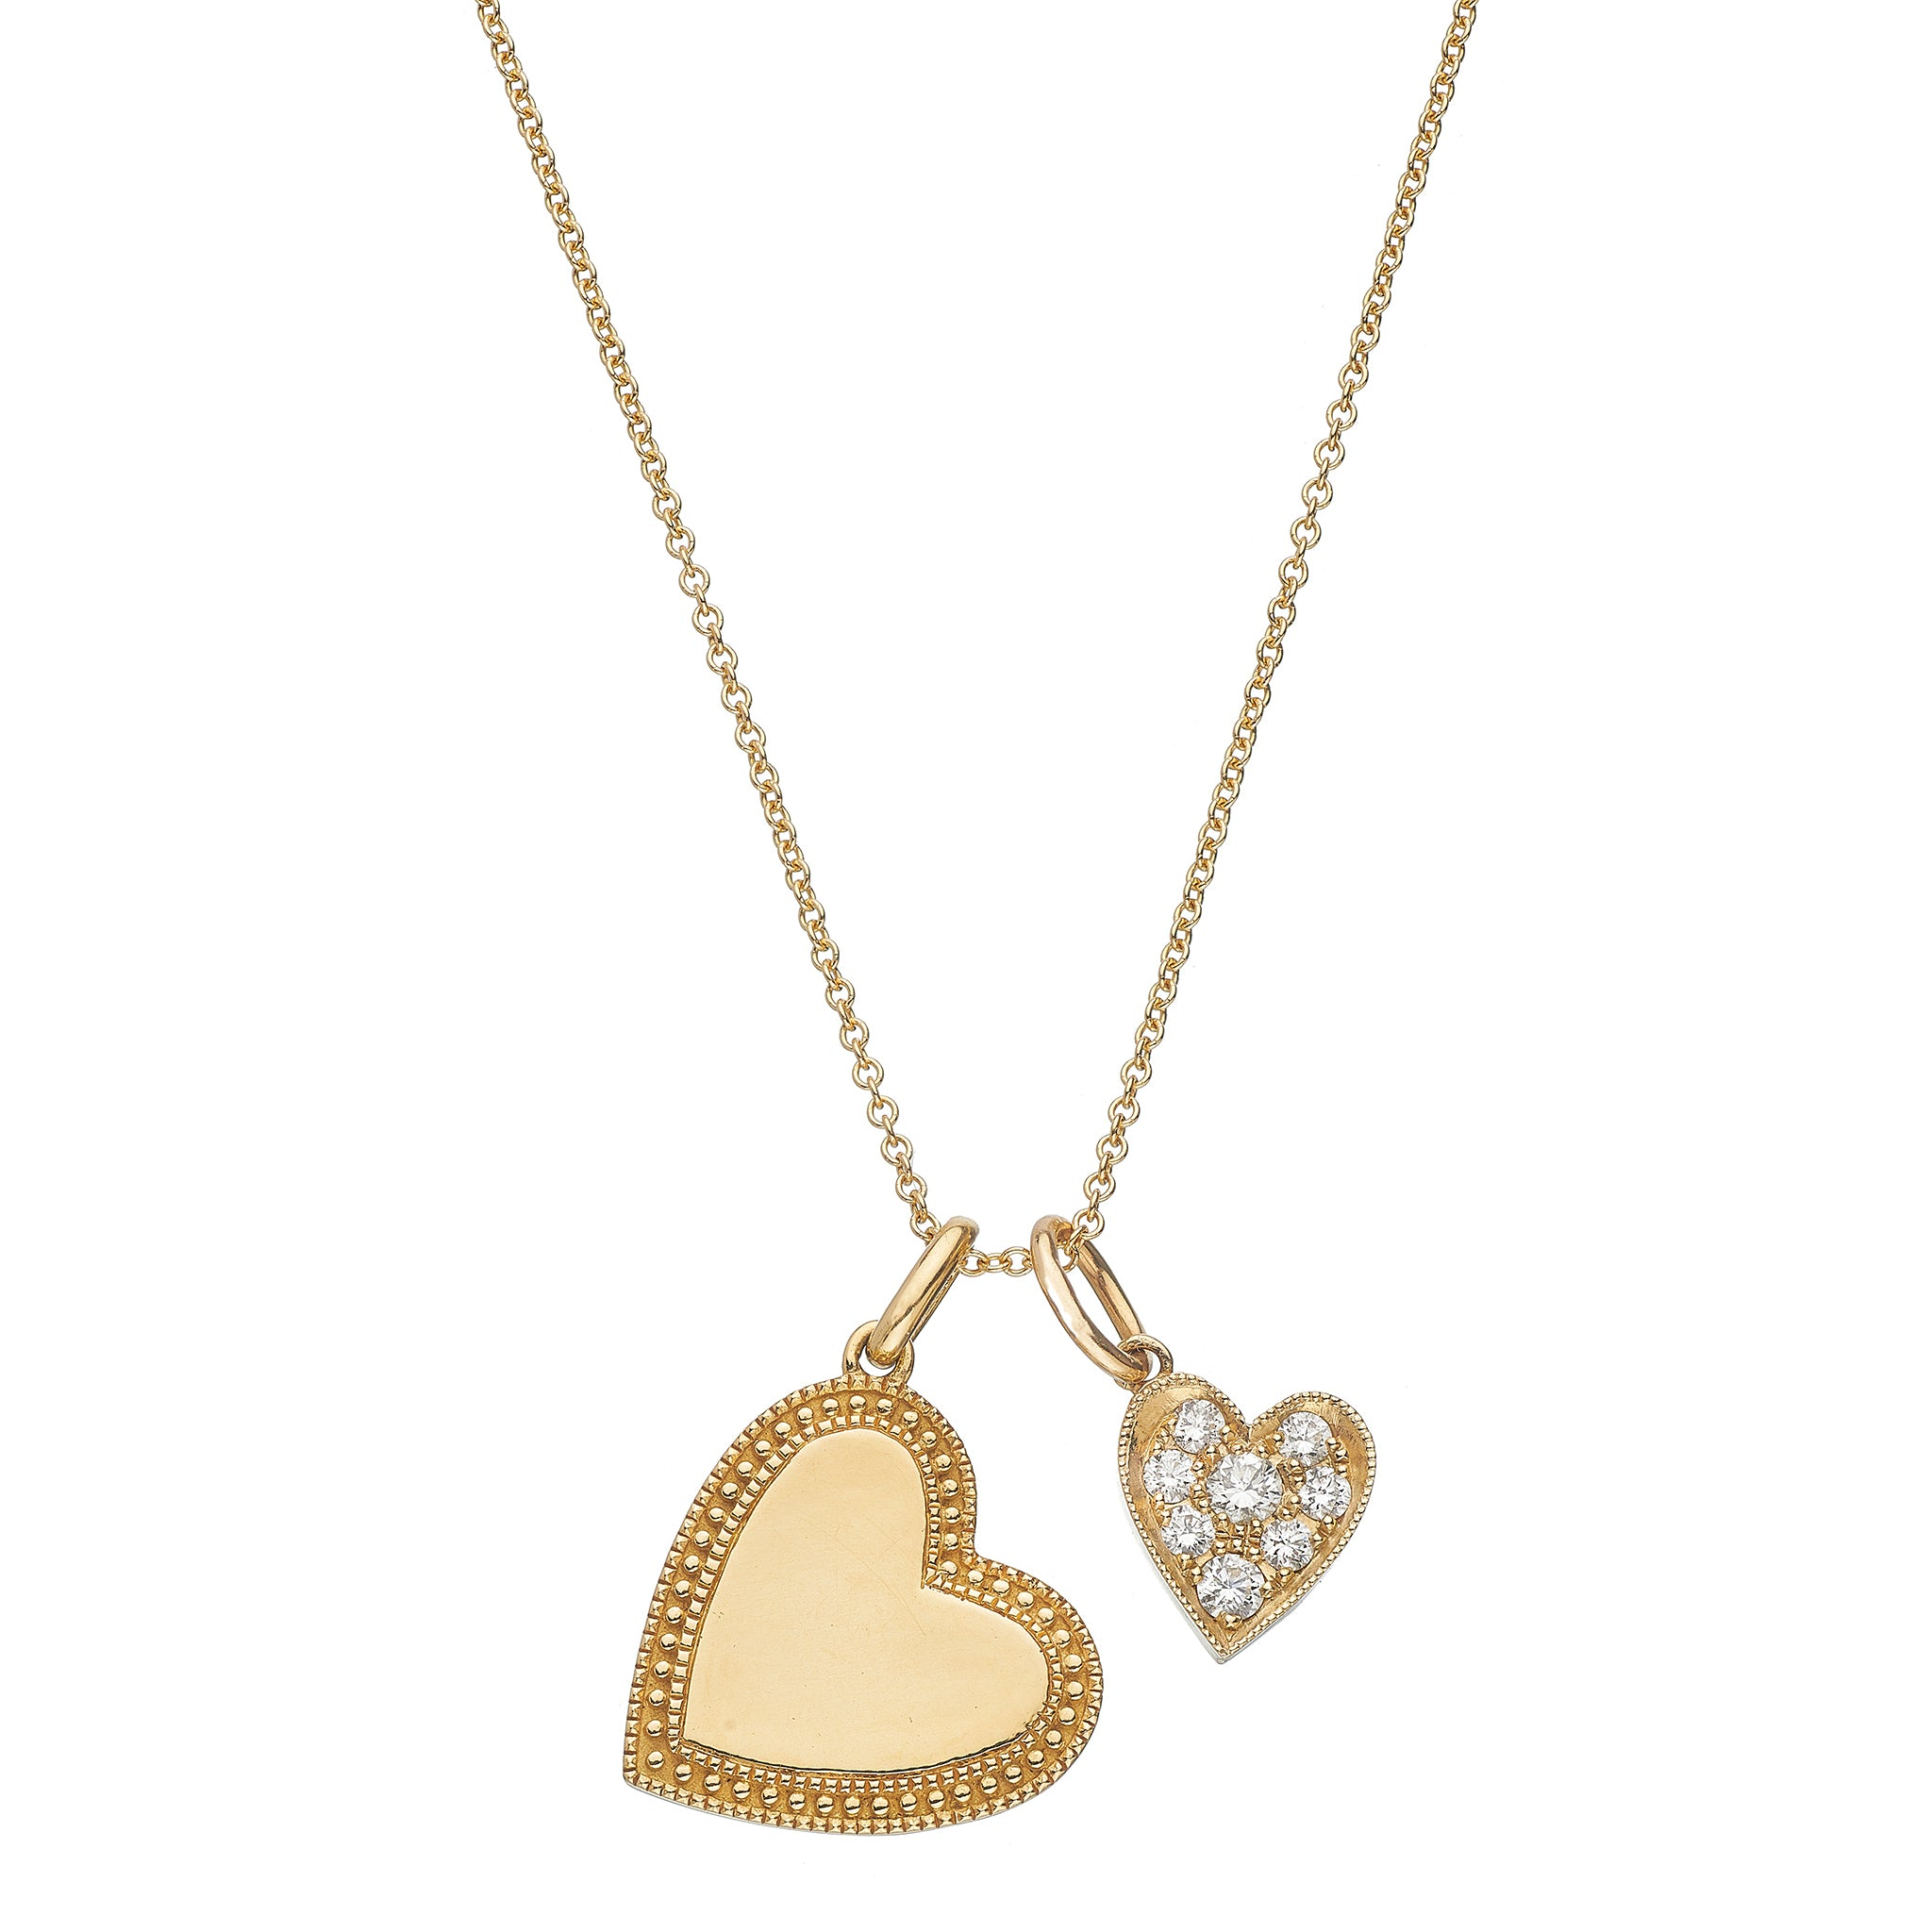 P.S. Yellow Gold Heart Charms on Oval Link Chain